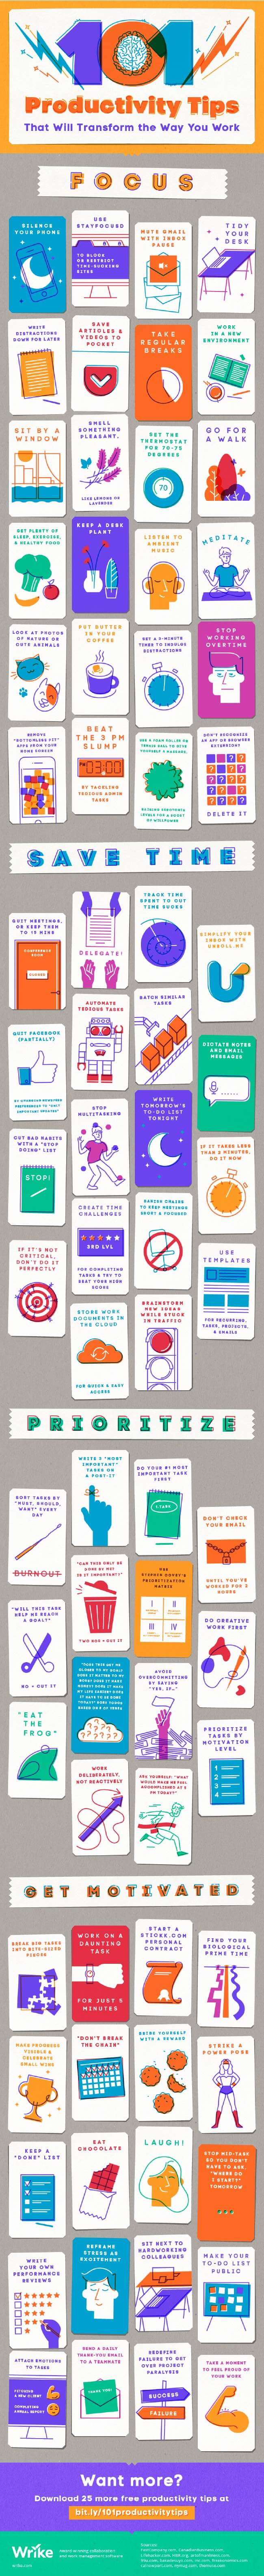 Image titled how to get more done with these 100 productivity tips plus one